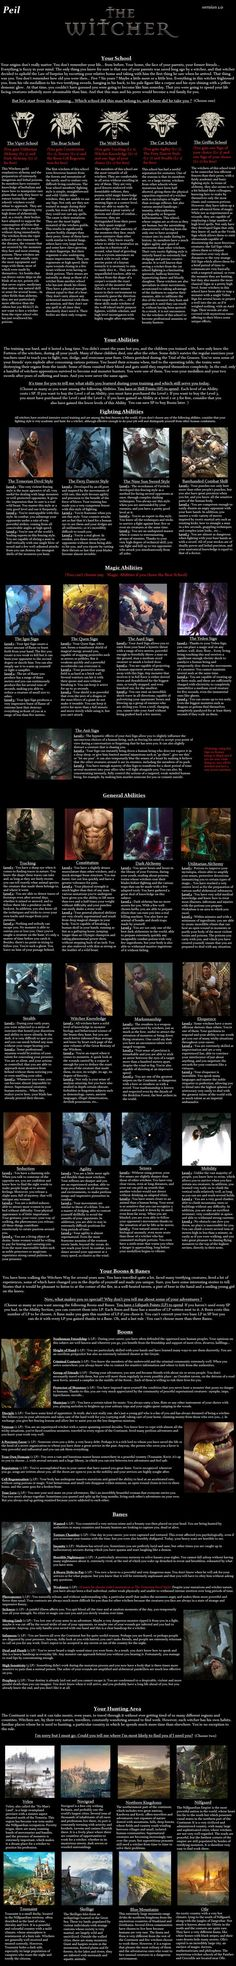 The Witcher CYOA (Choose Your Own Adventure) : Create your own witcher ! #TheWitcher3 #PS4 #WILDHUNT #PS4share #games #gaming #TheWitcher #TheWitcher3WildHunt